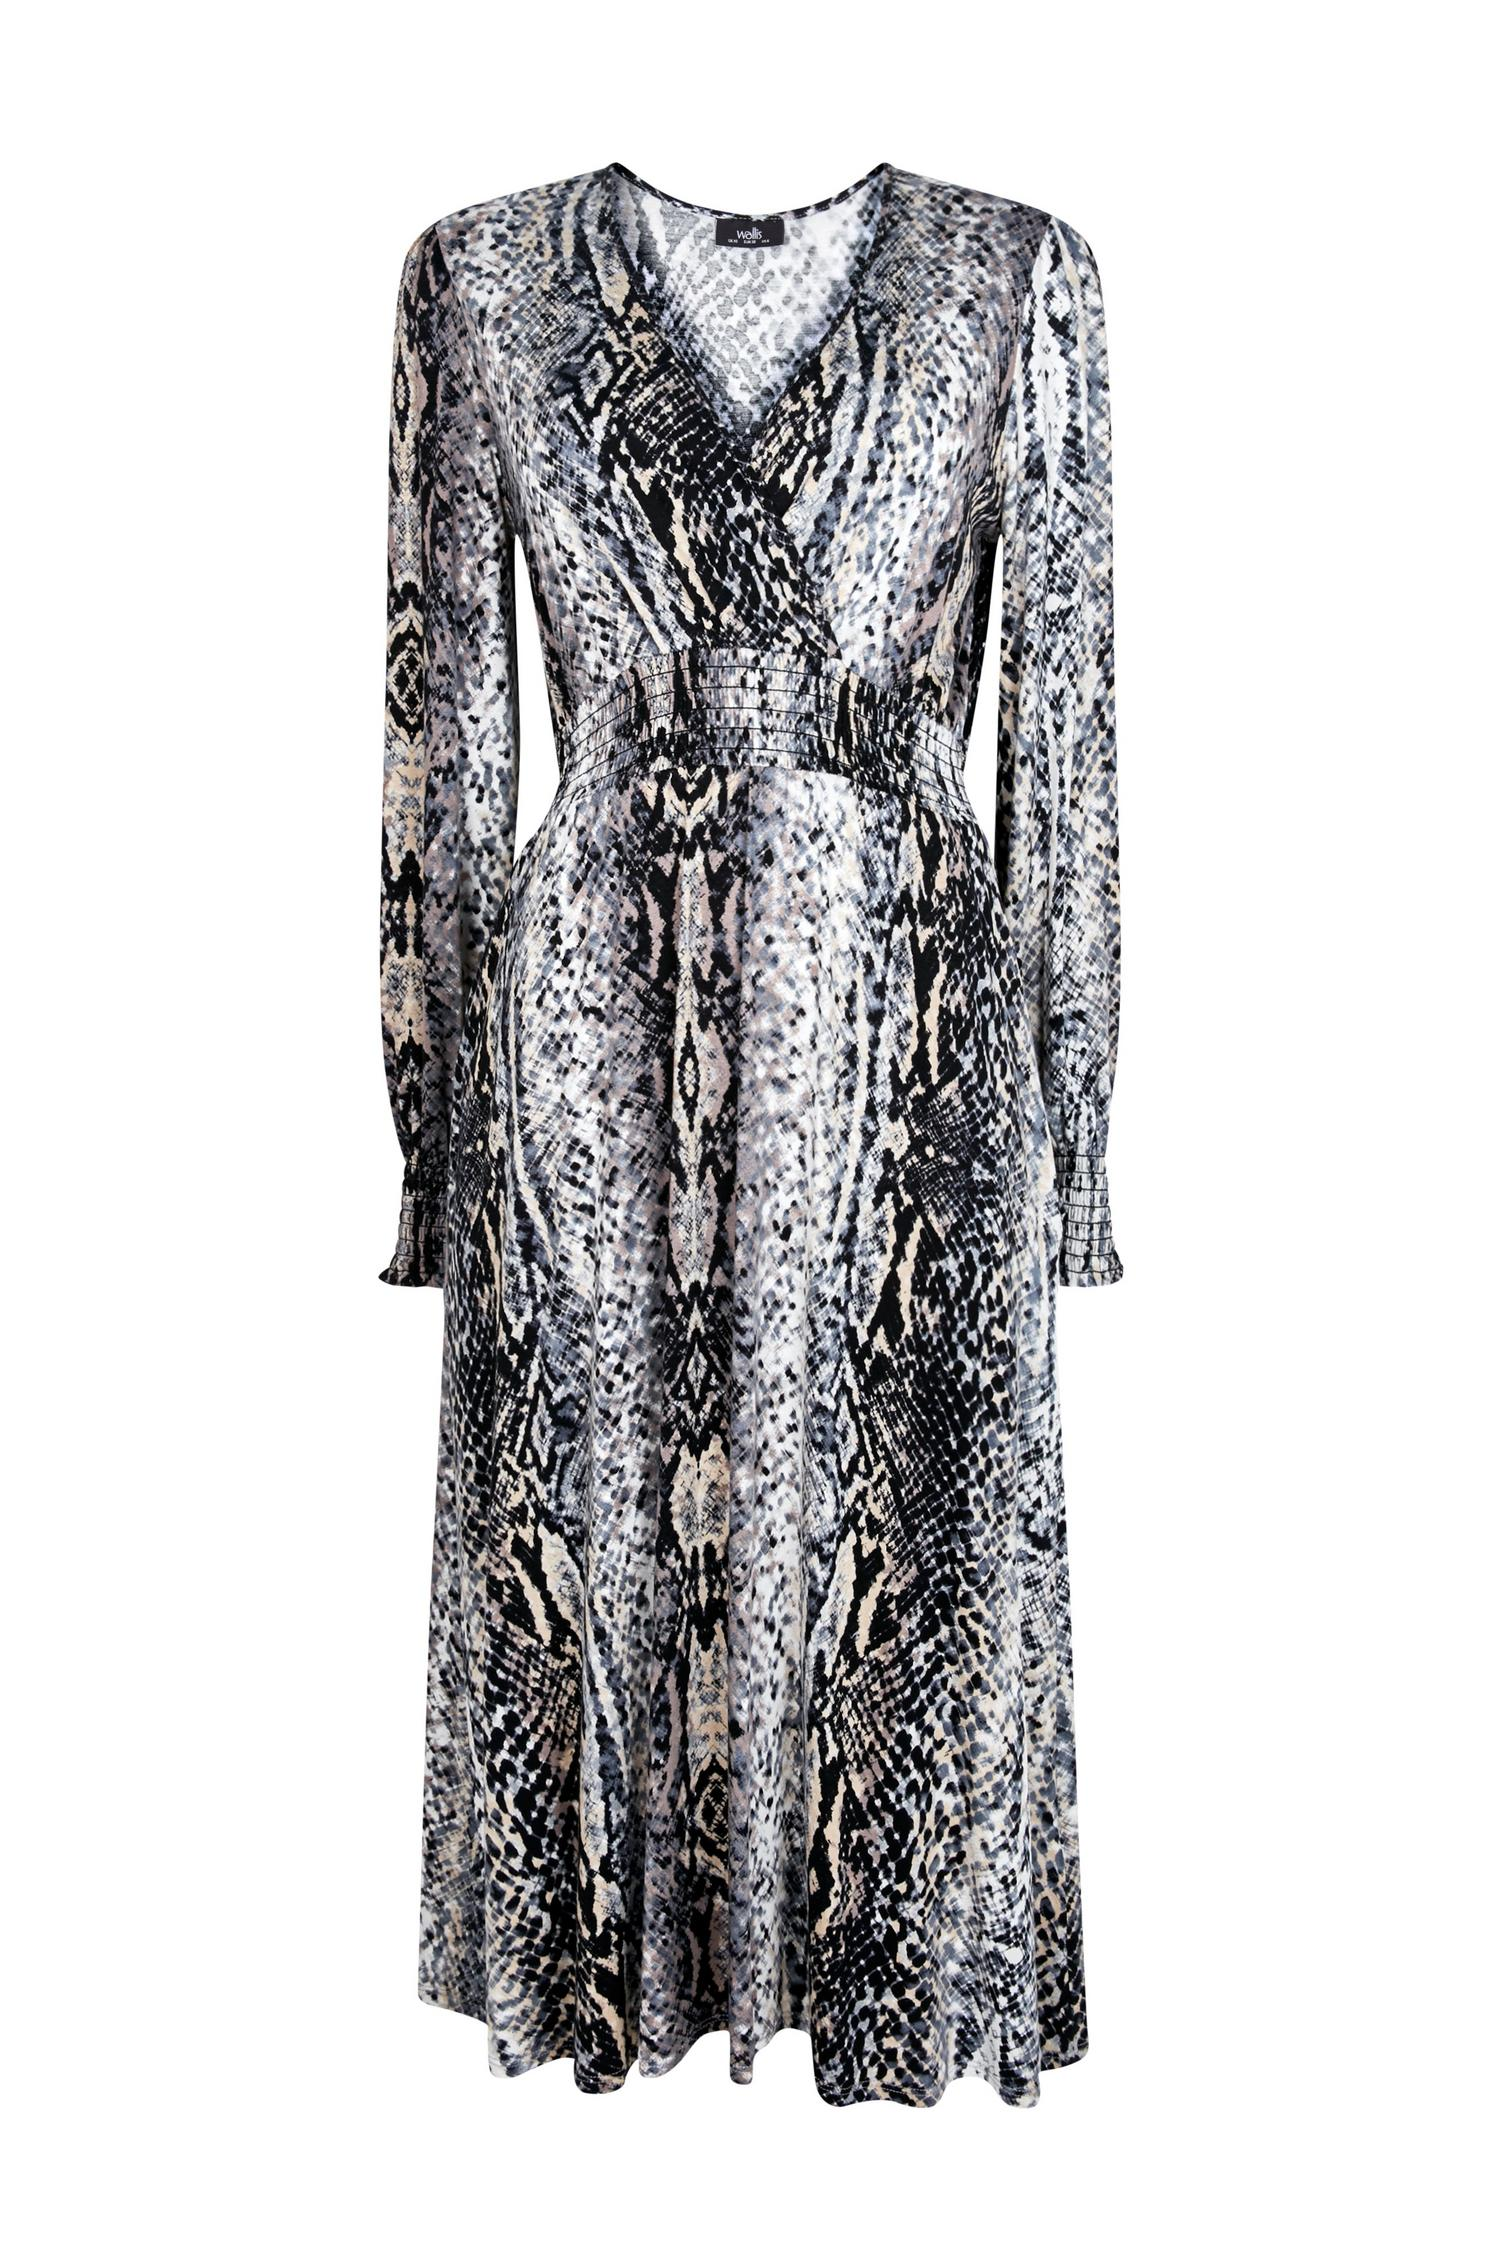 131 Grey Snake Print Wrap Dress image number 4